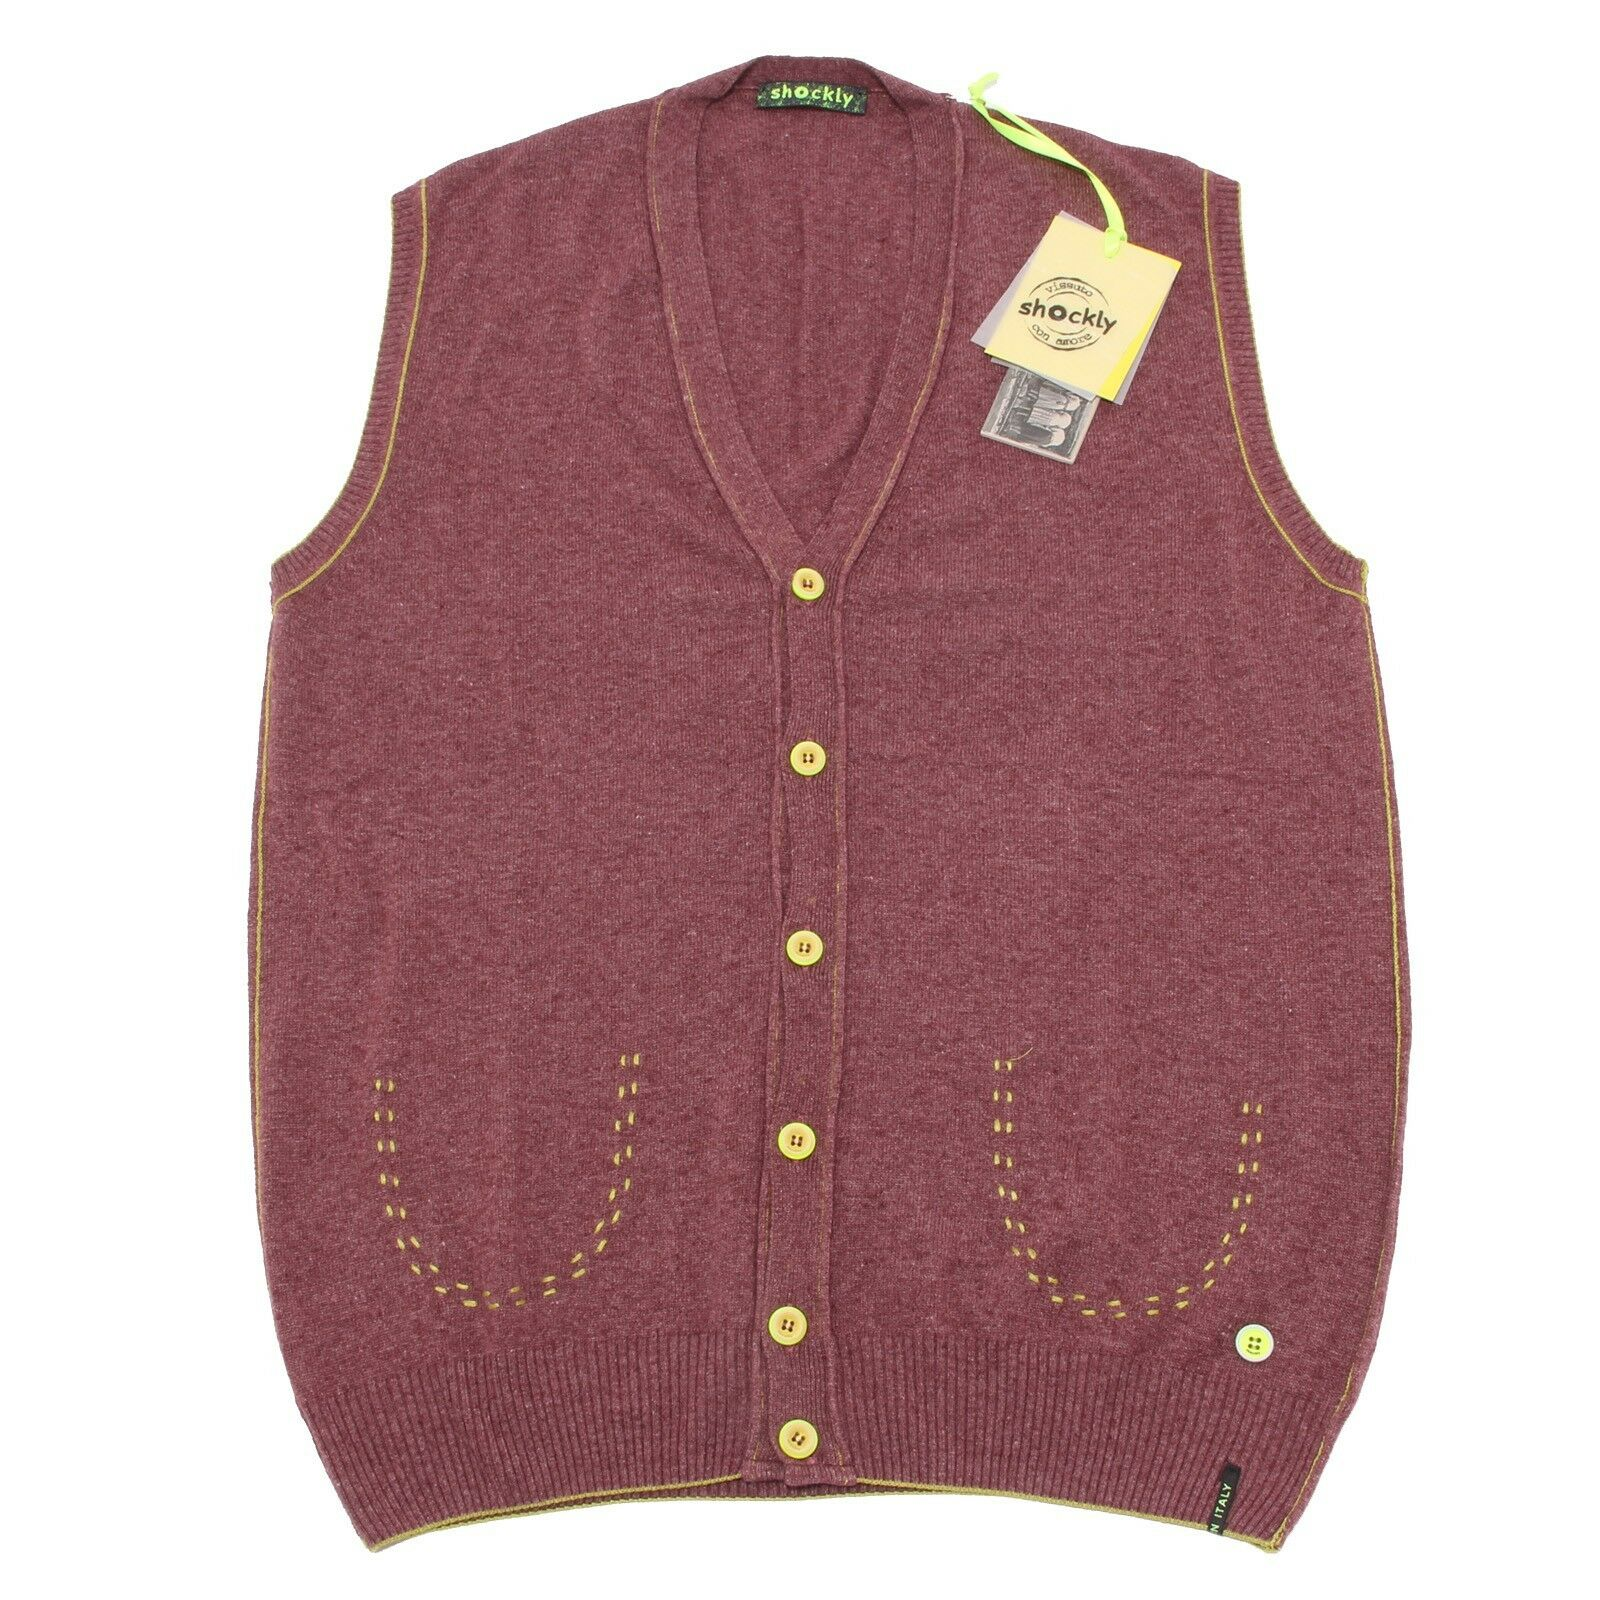 2200Q gilet uomo SHOCKLY SHOCKLY SHOCKLY smanicato bordeaux sleeveless sweater men d31aa8